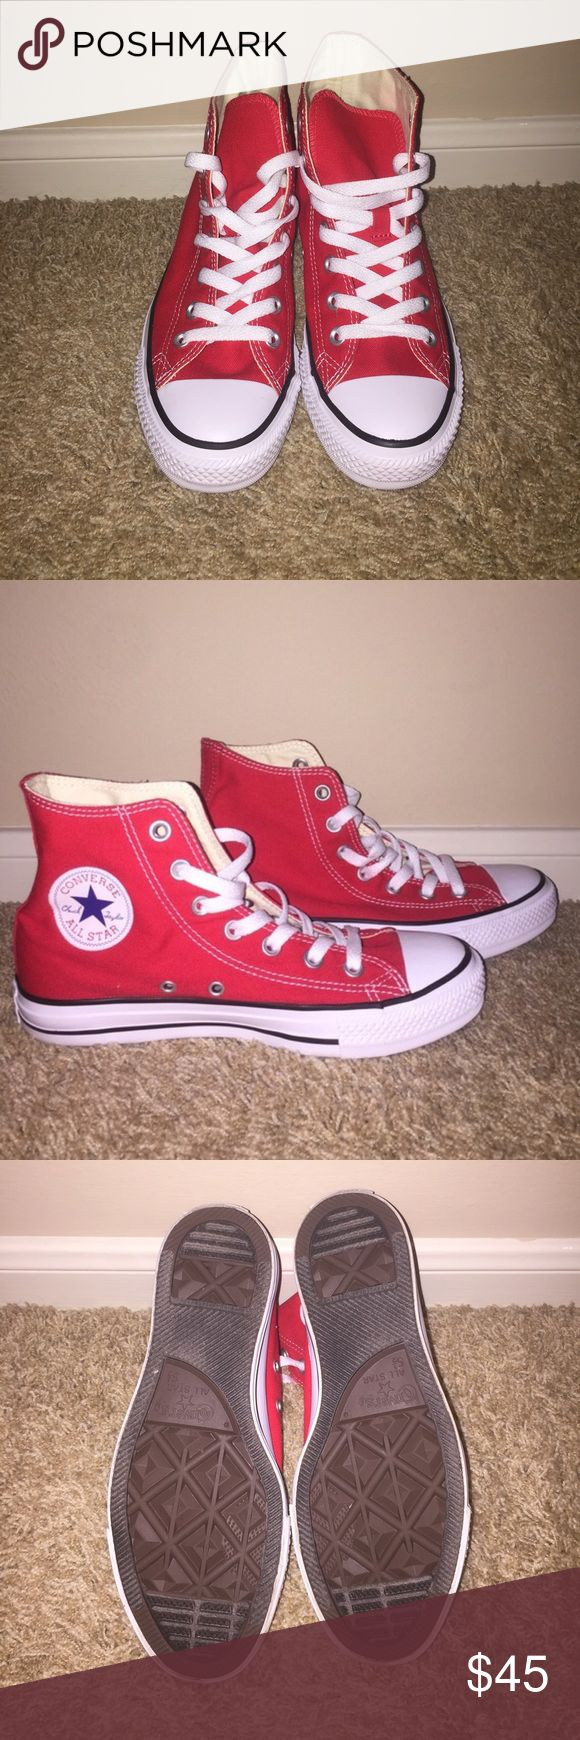 Red Converse All Stars Never worn--Accepting reasonable offers!! Converse Shoes Sneakers